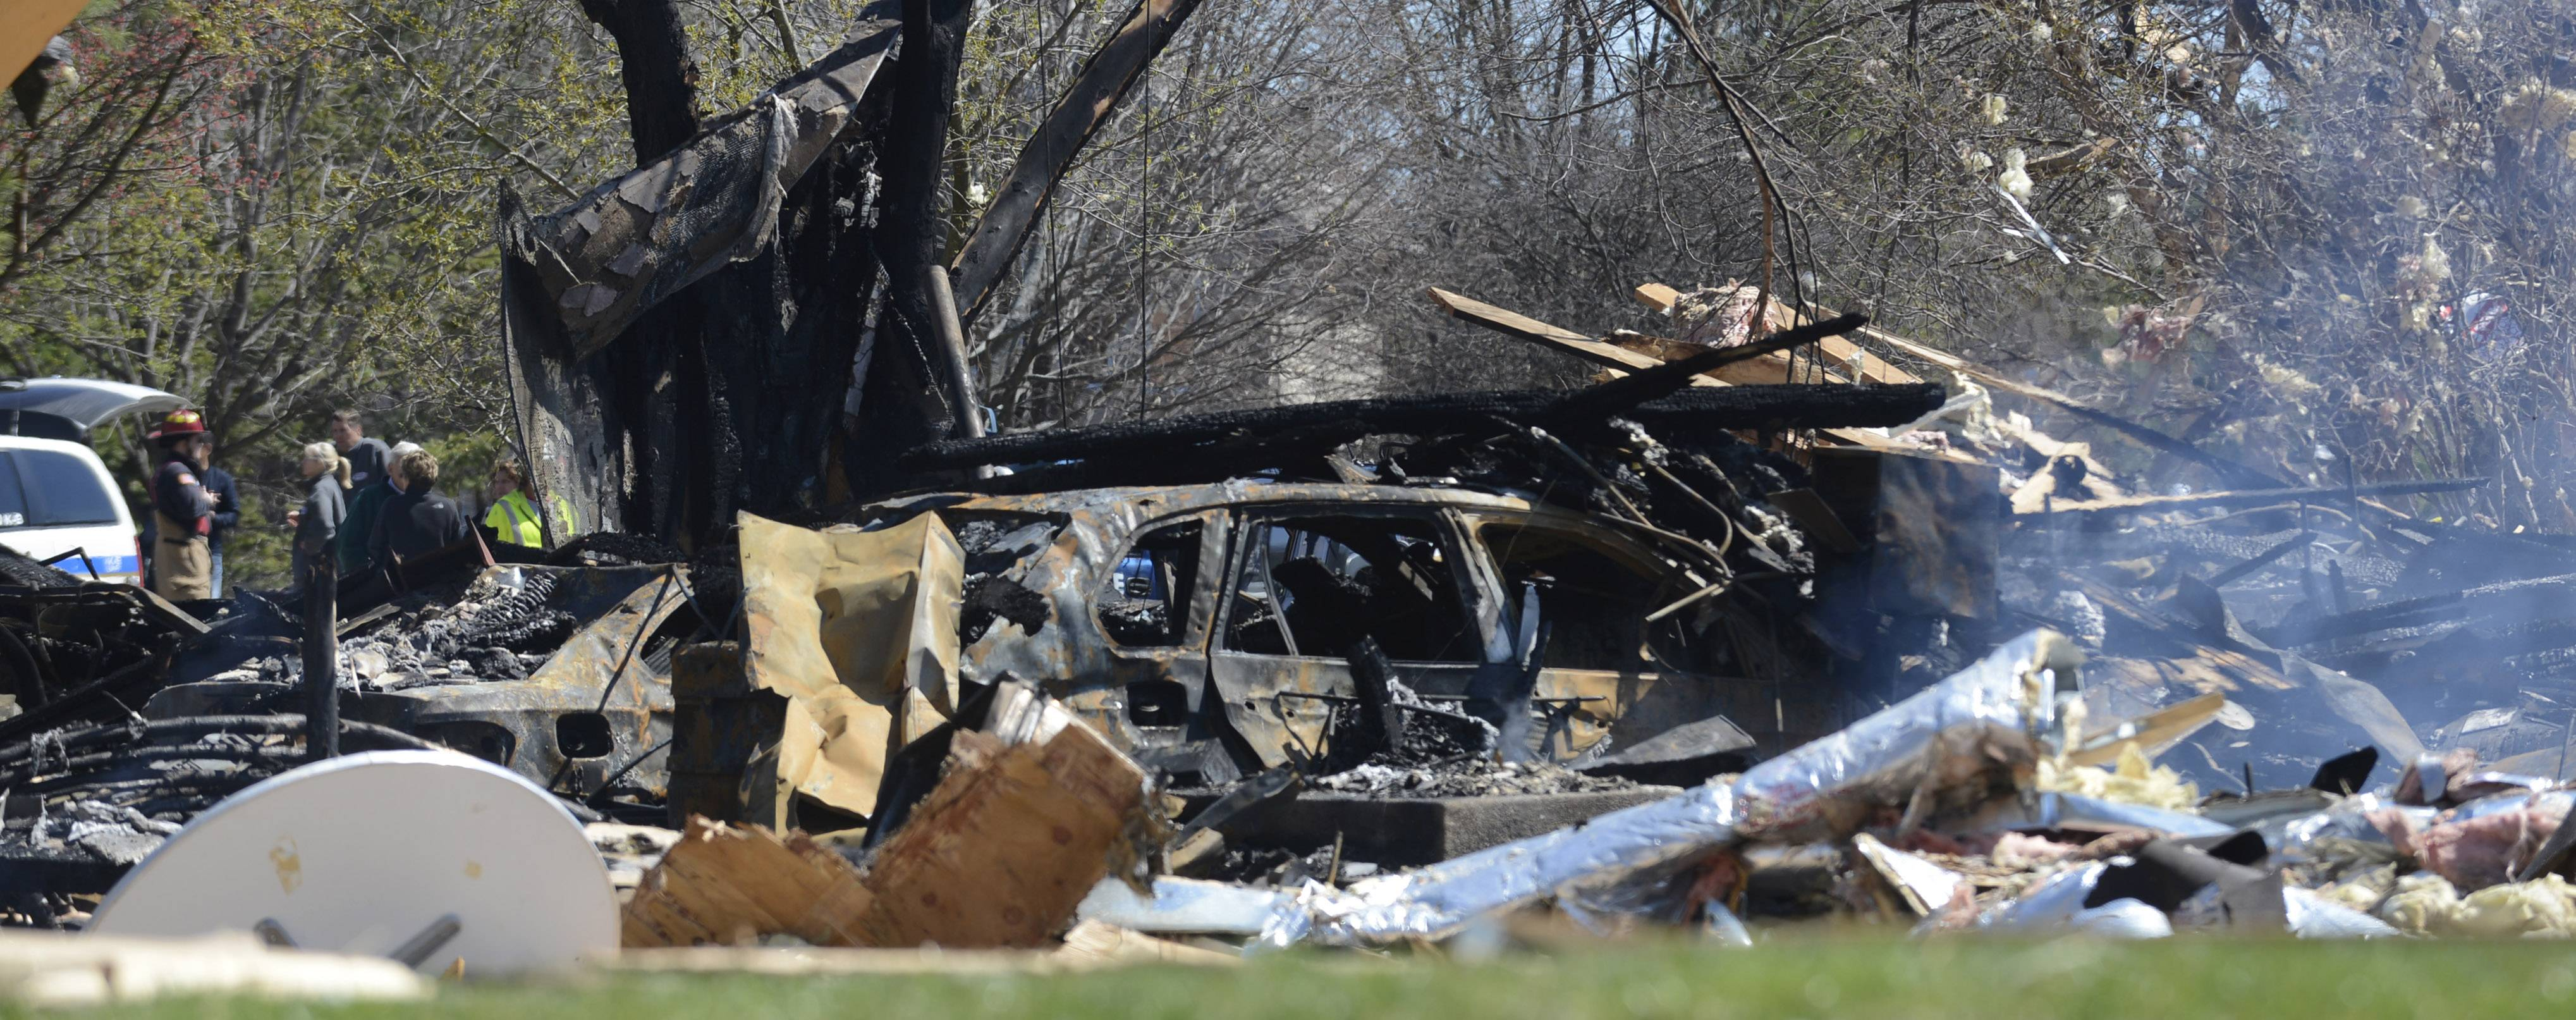 No less than two burned cars rest in the aftermath of Friday's night's explosion of a home in Long Grove.